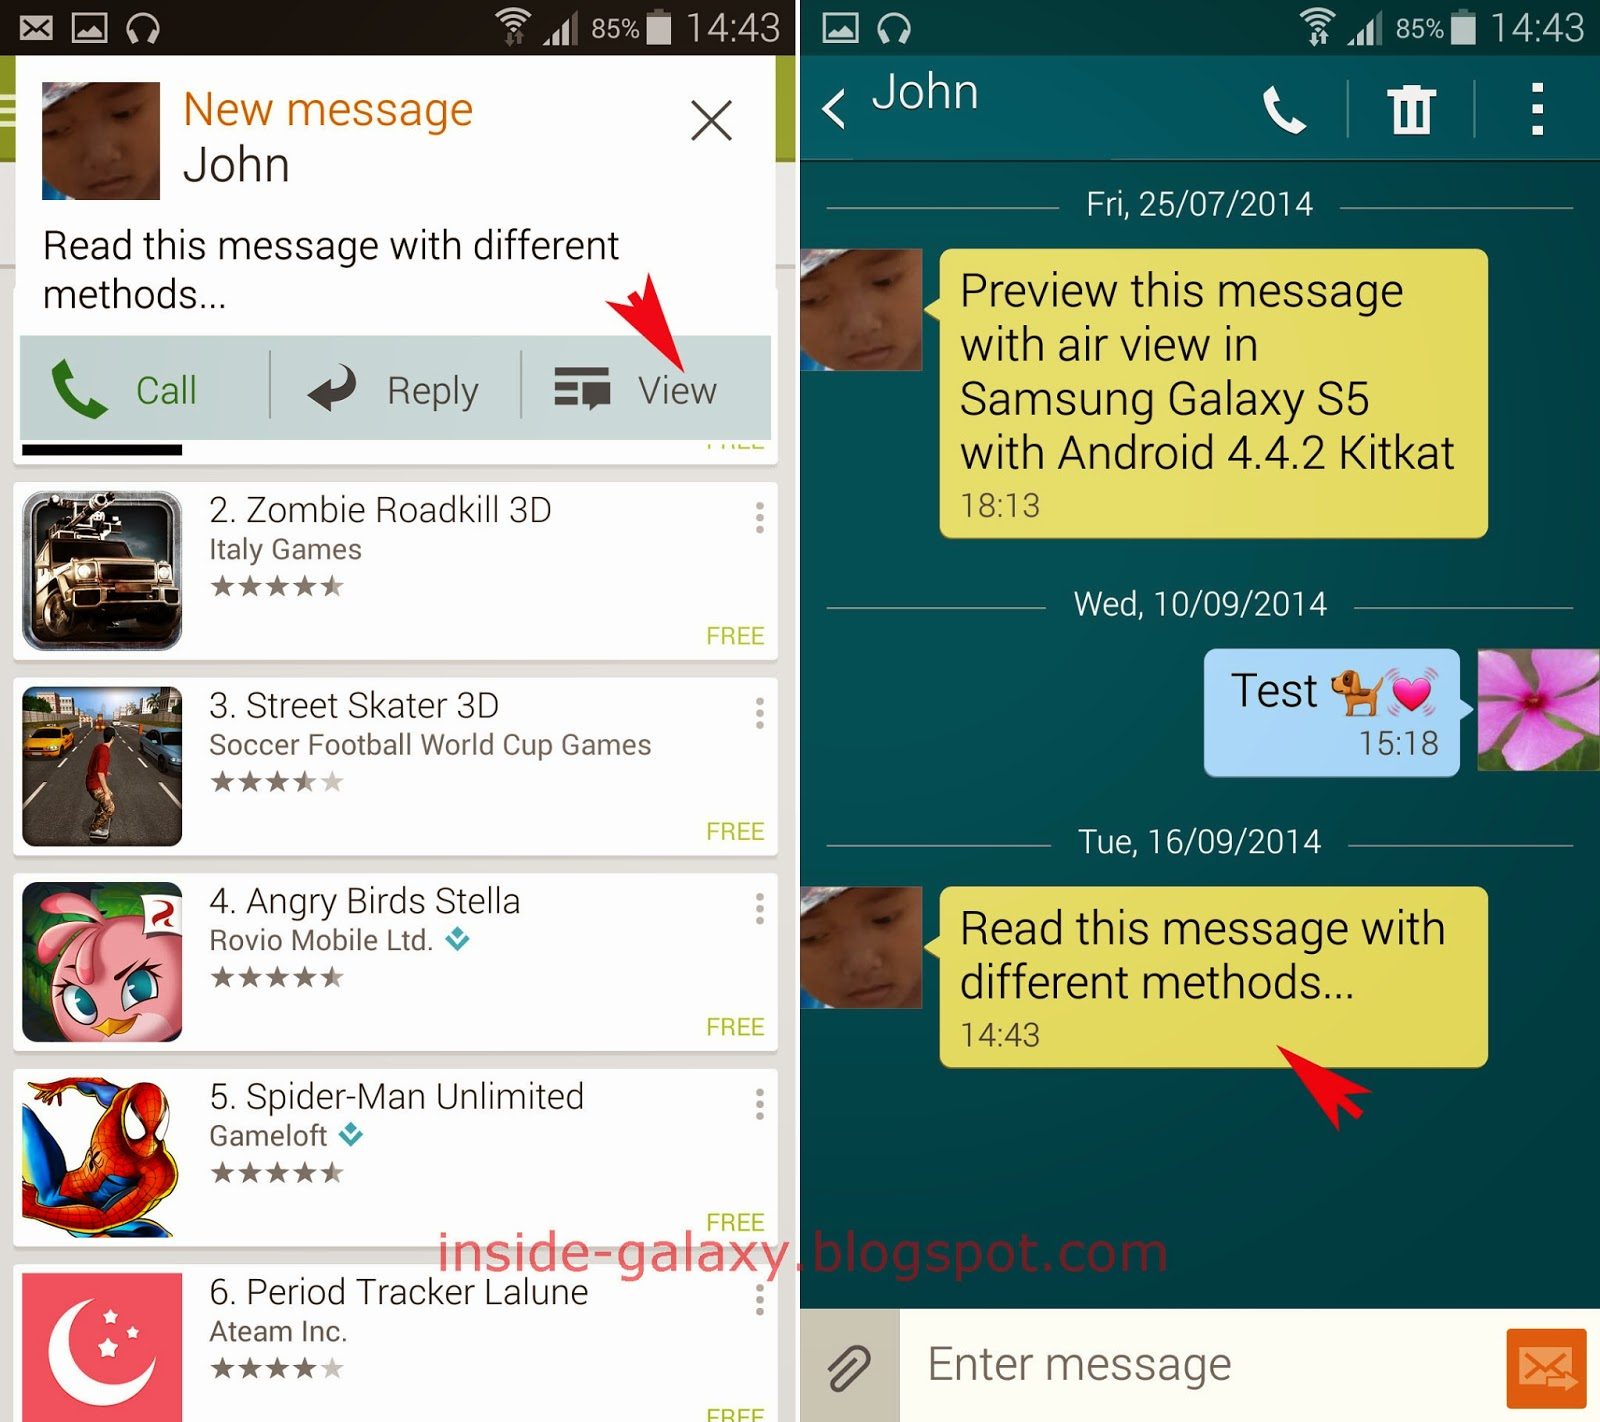 Inside Galaxy: Samsung Galaxy S5: How to Read New Text Messages in ...